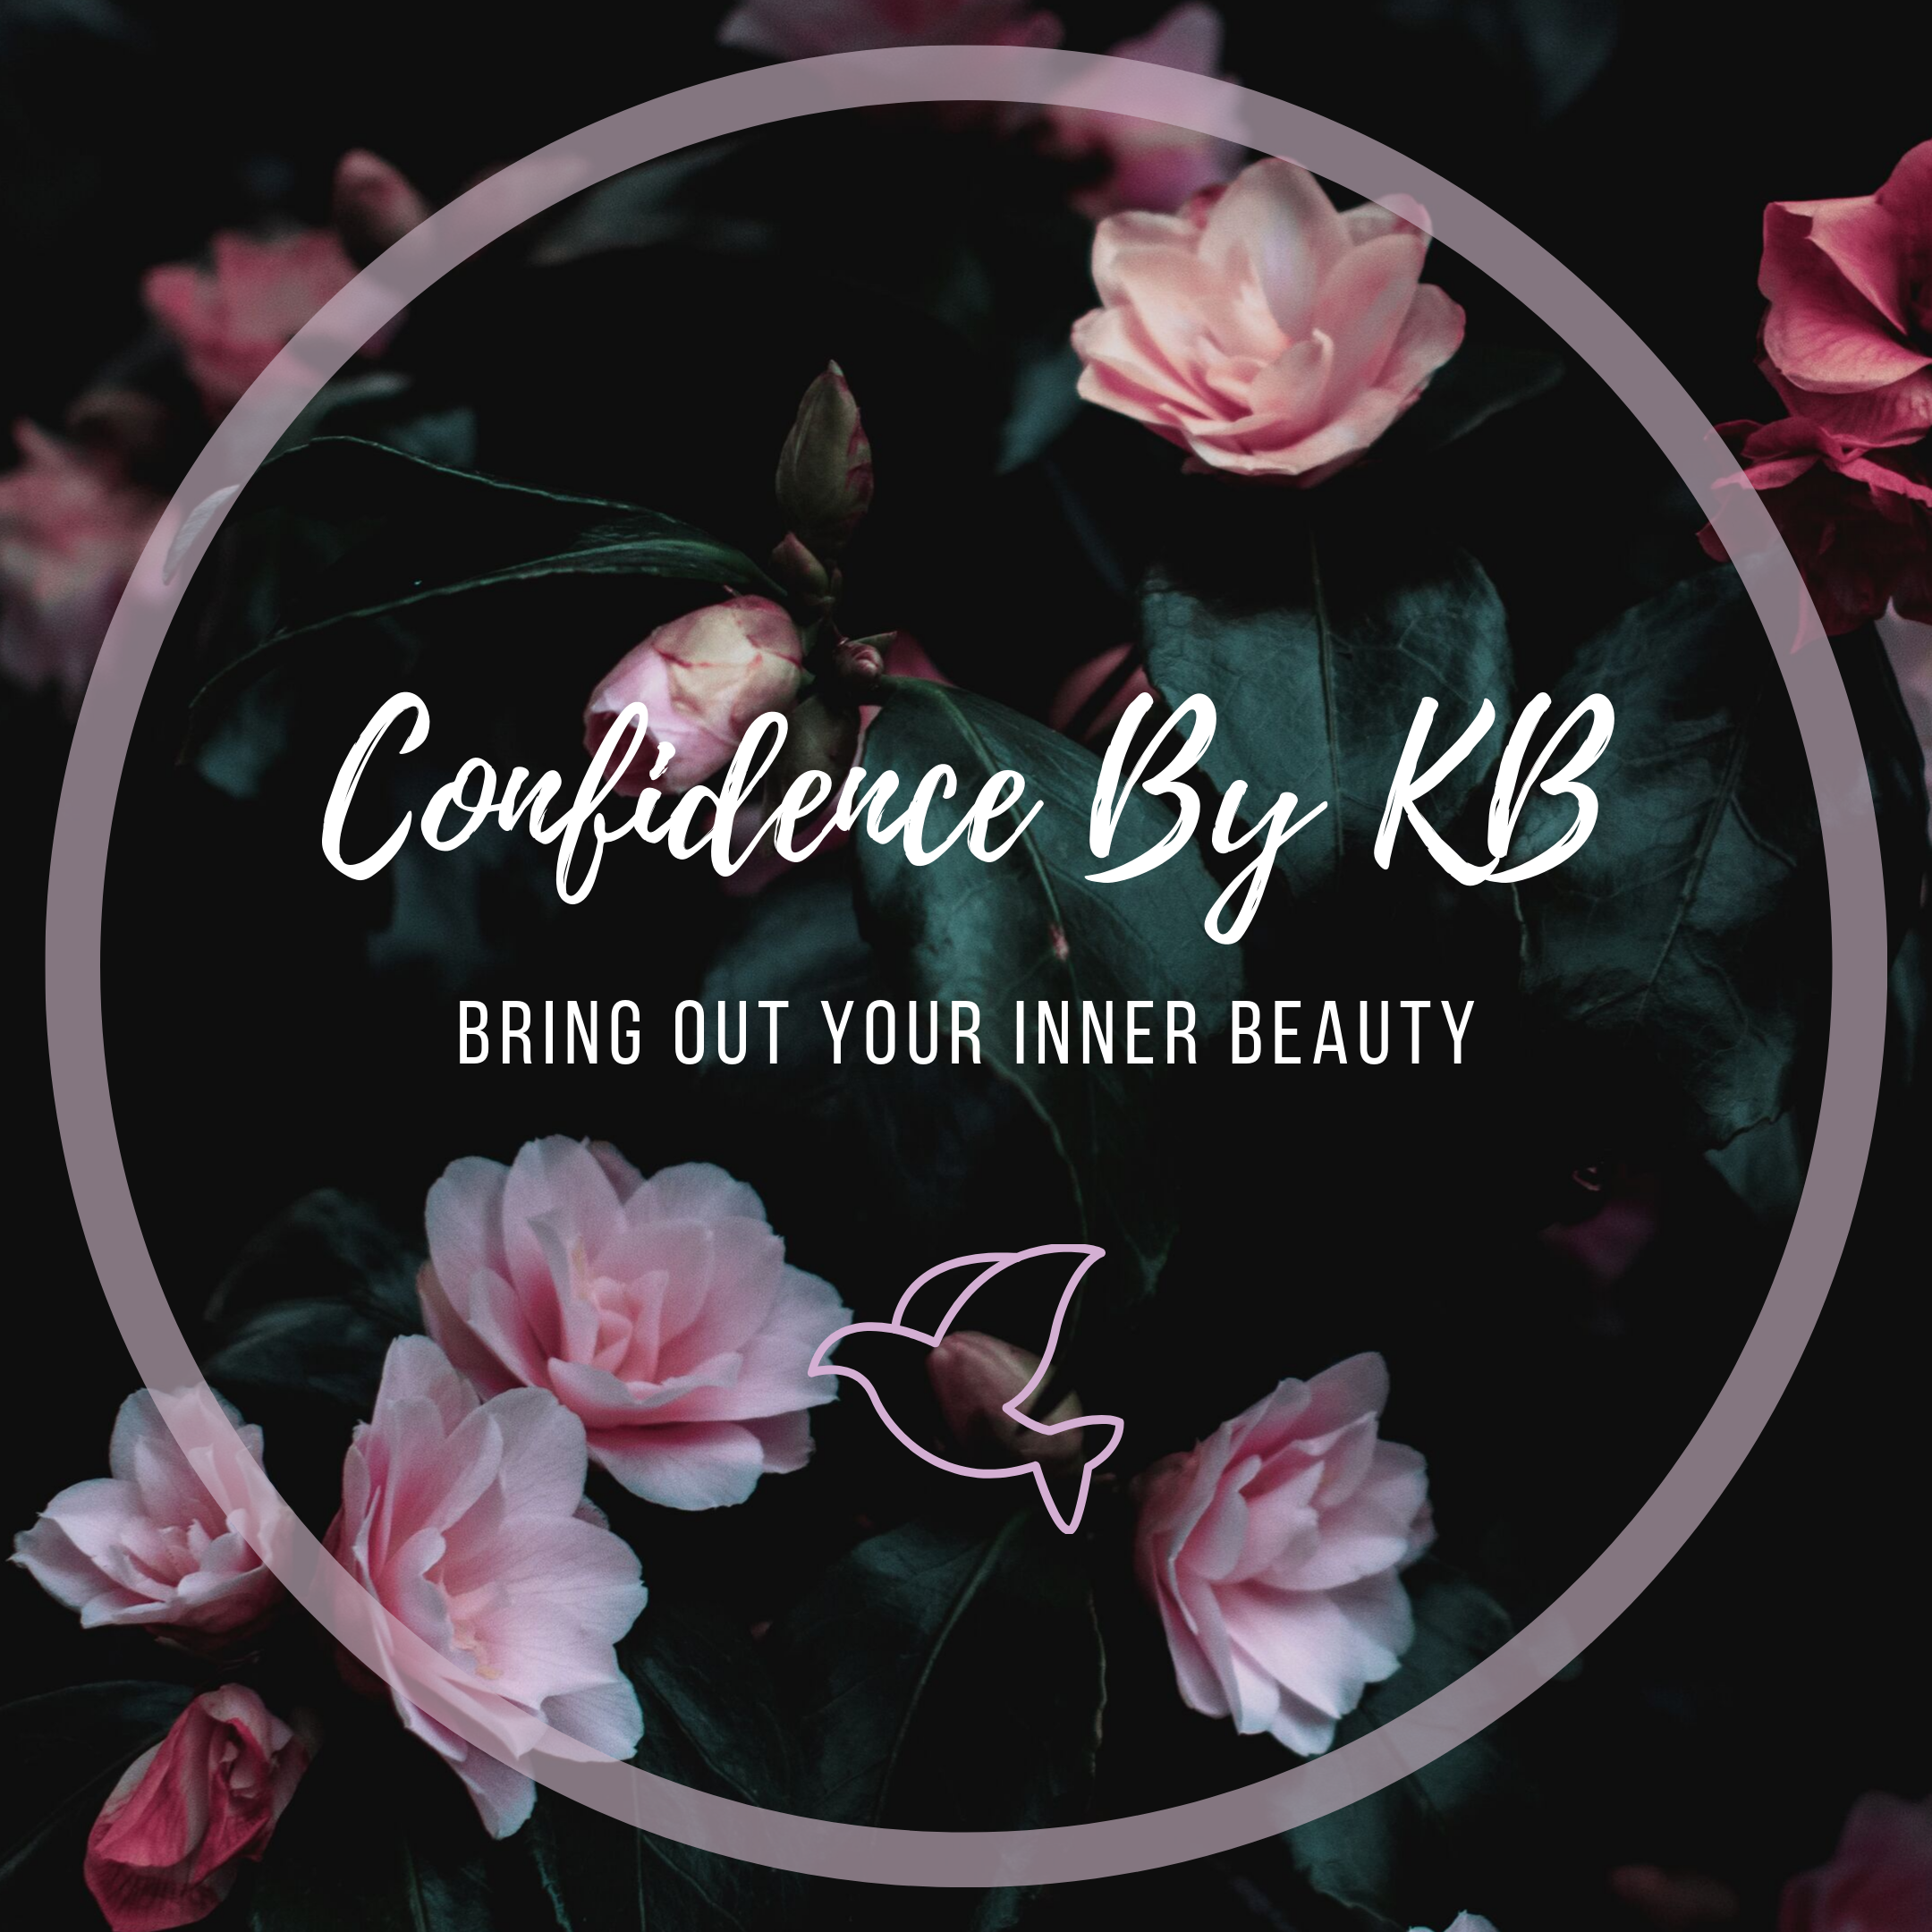 Confidence By KB